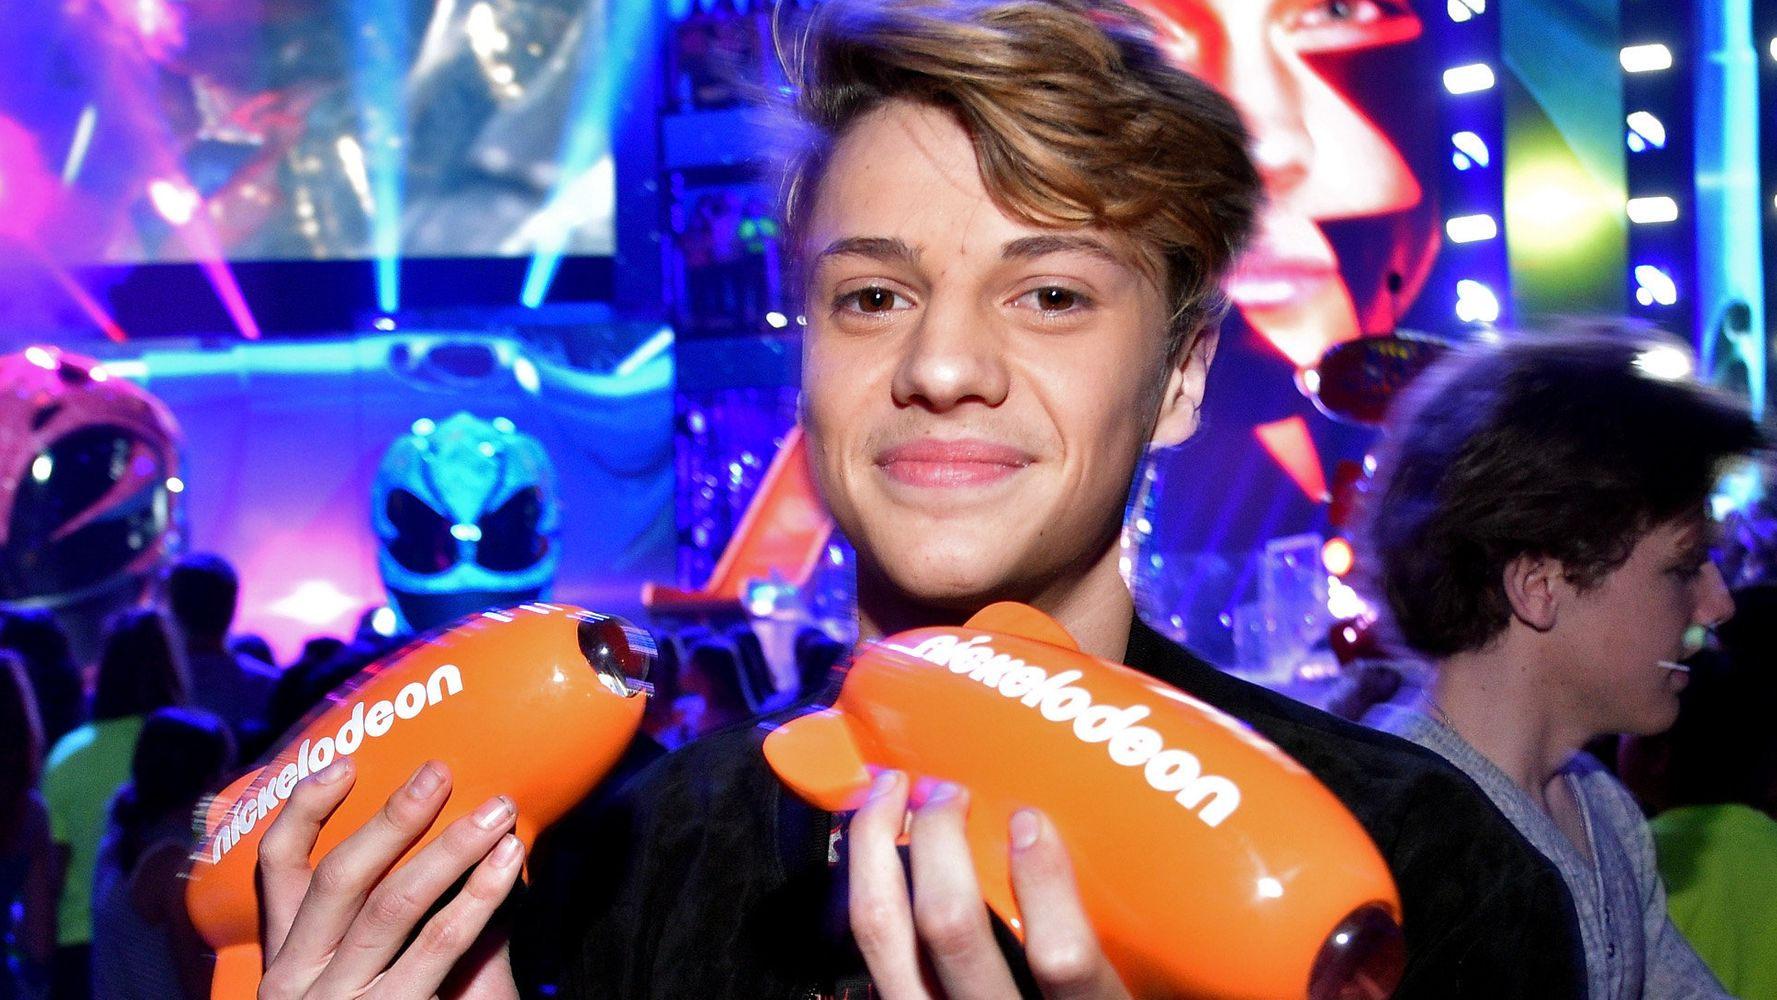 You'll Never Believe Who Jace Norman Wants To Slime   HuffPost